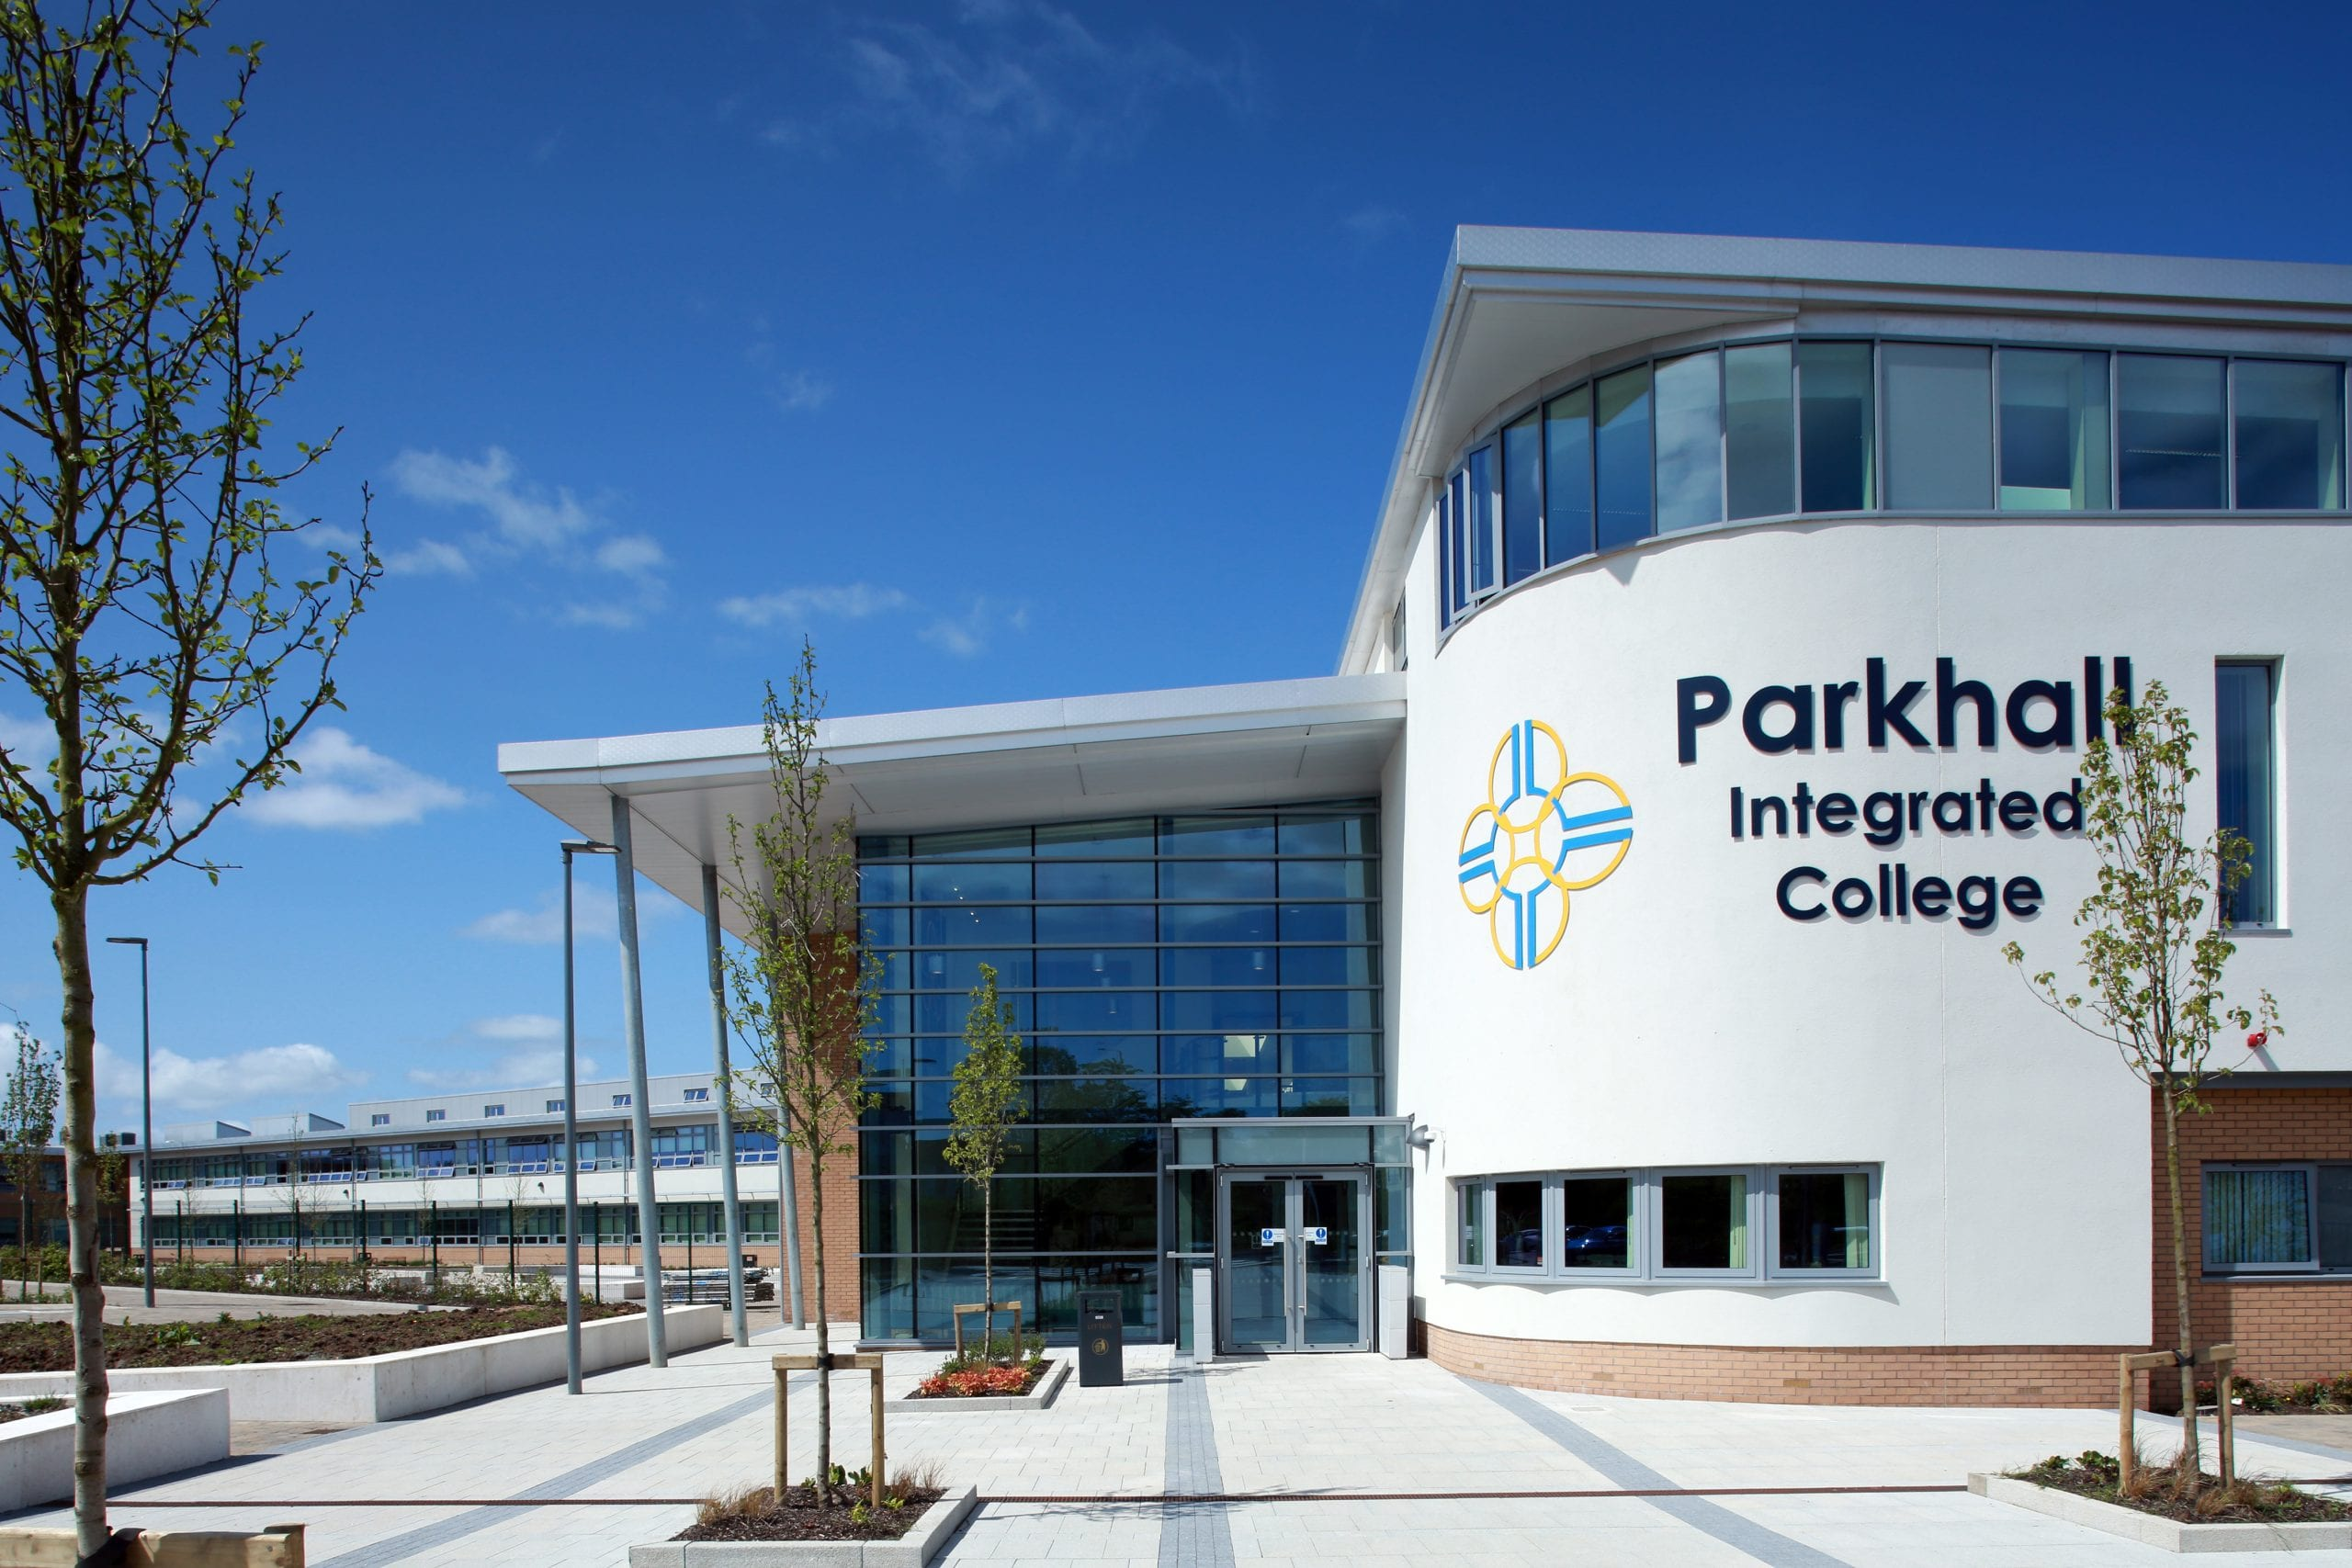 Parkhall Integrated College Featured Image